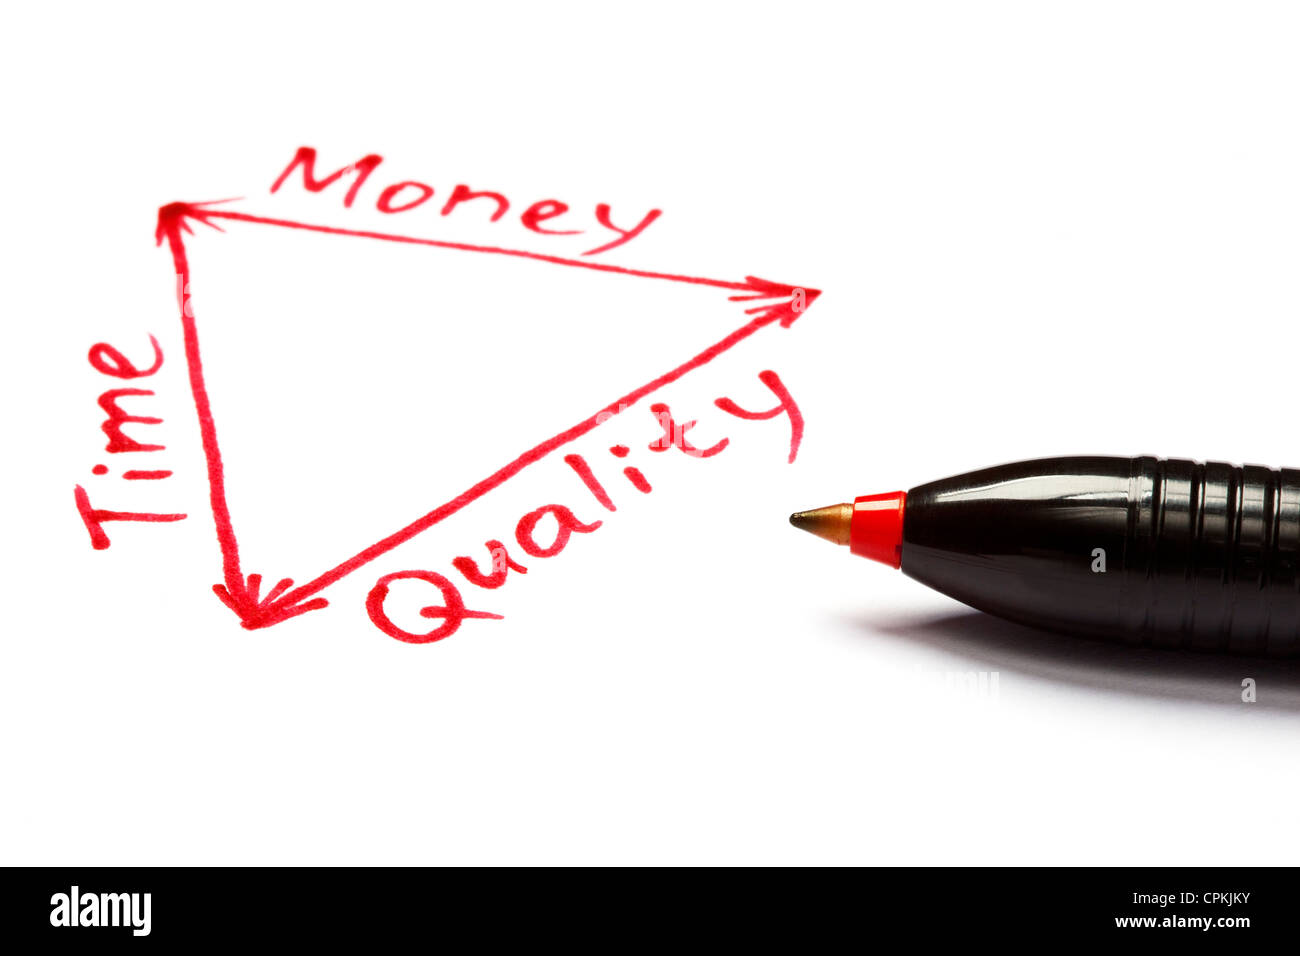 Project management plan in a diagram about the balance between time, money and quality. - Stock Image